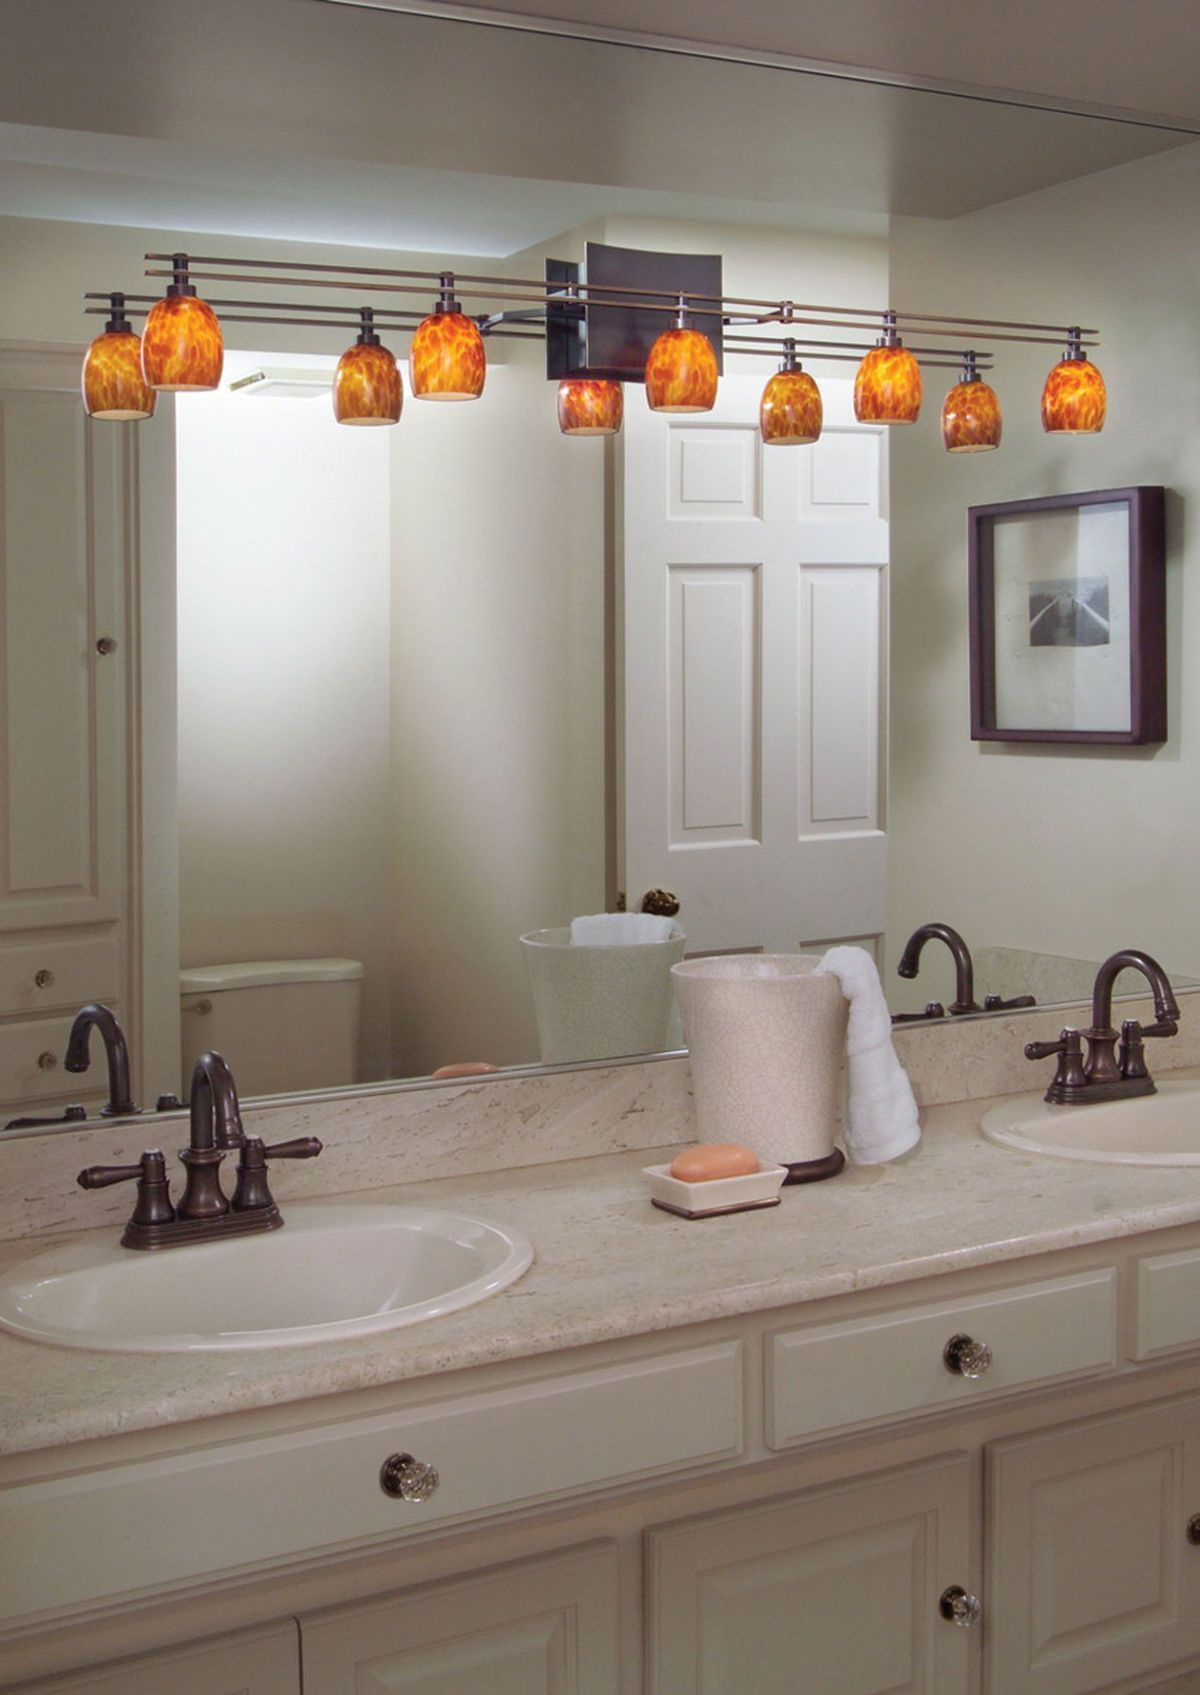 Bathroom Vanity Track Lighting In Small Bathroom Pinterest Track Lighting In Small Bathroom Track Lighting Fixture For